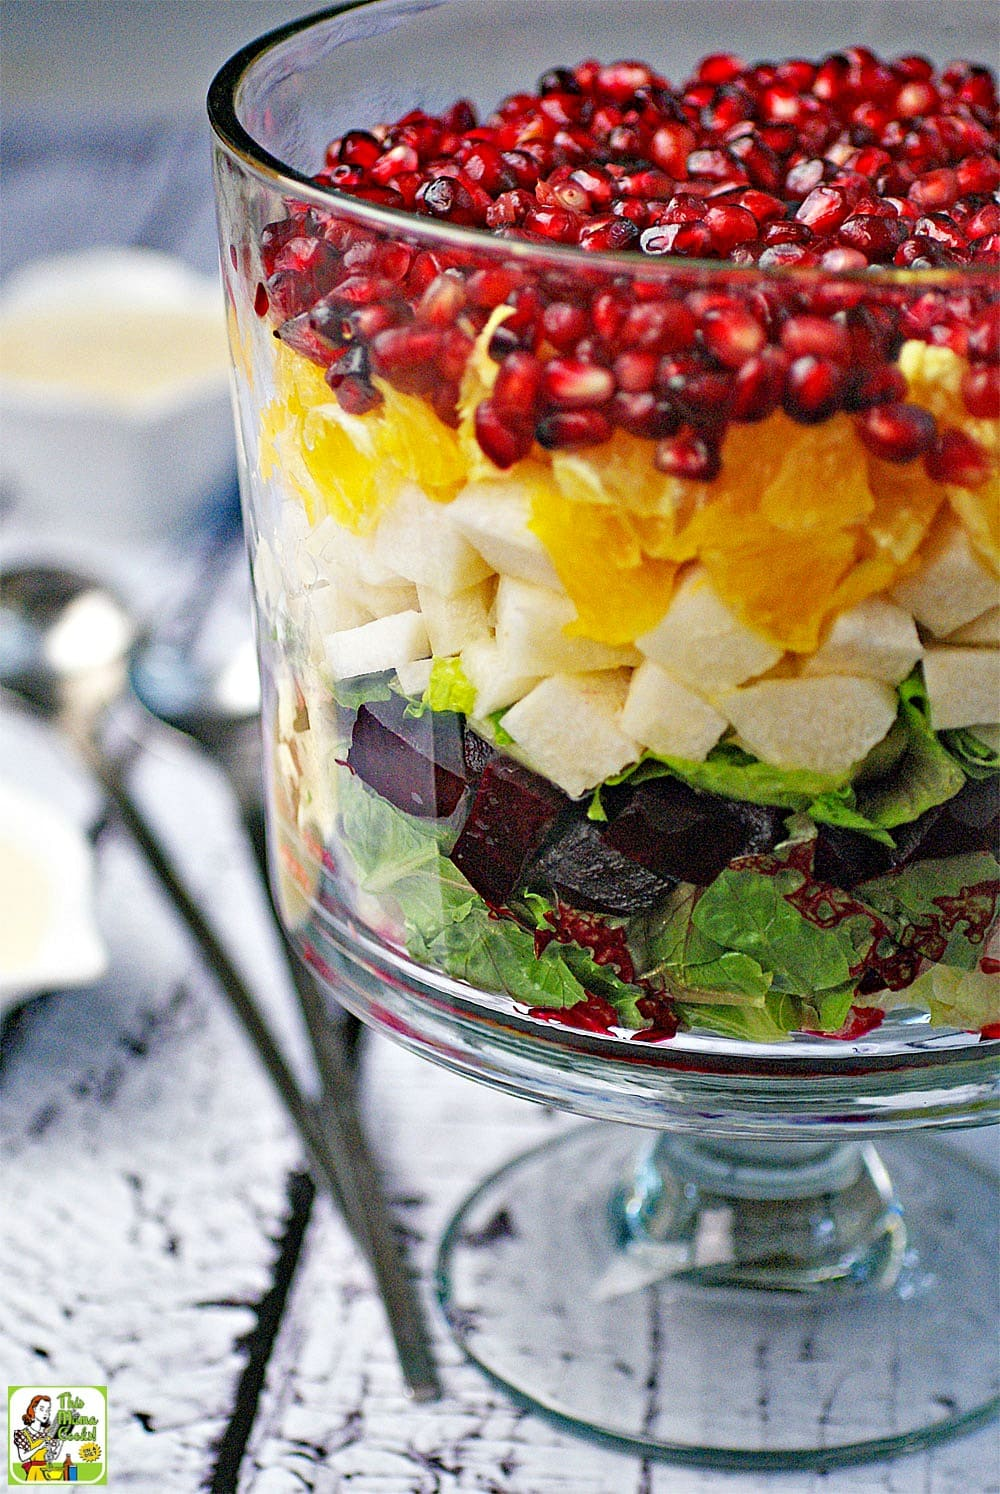 Closeup of a Mexican Christmas Eve Salad in a glass bowl with layers of lettuce, beets, jicama, oranges, and pomegranate seeds.